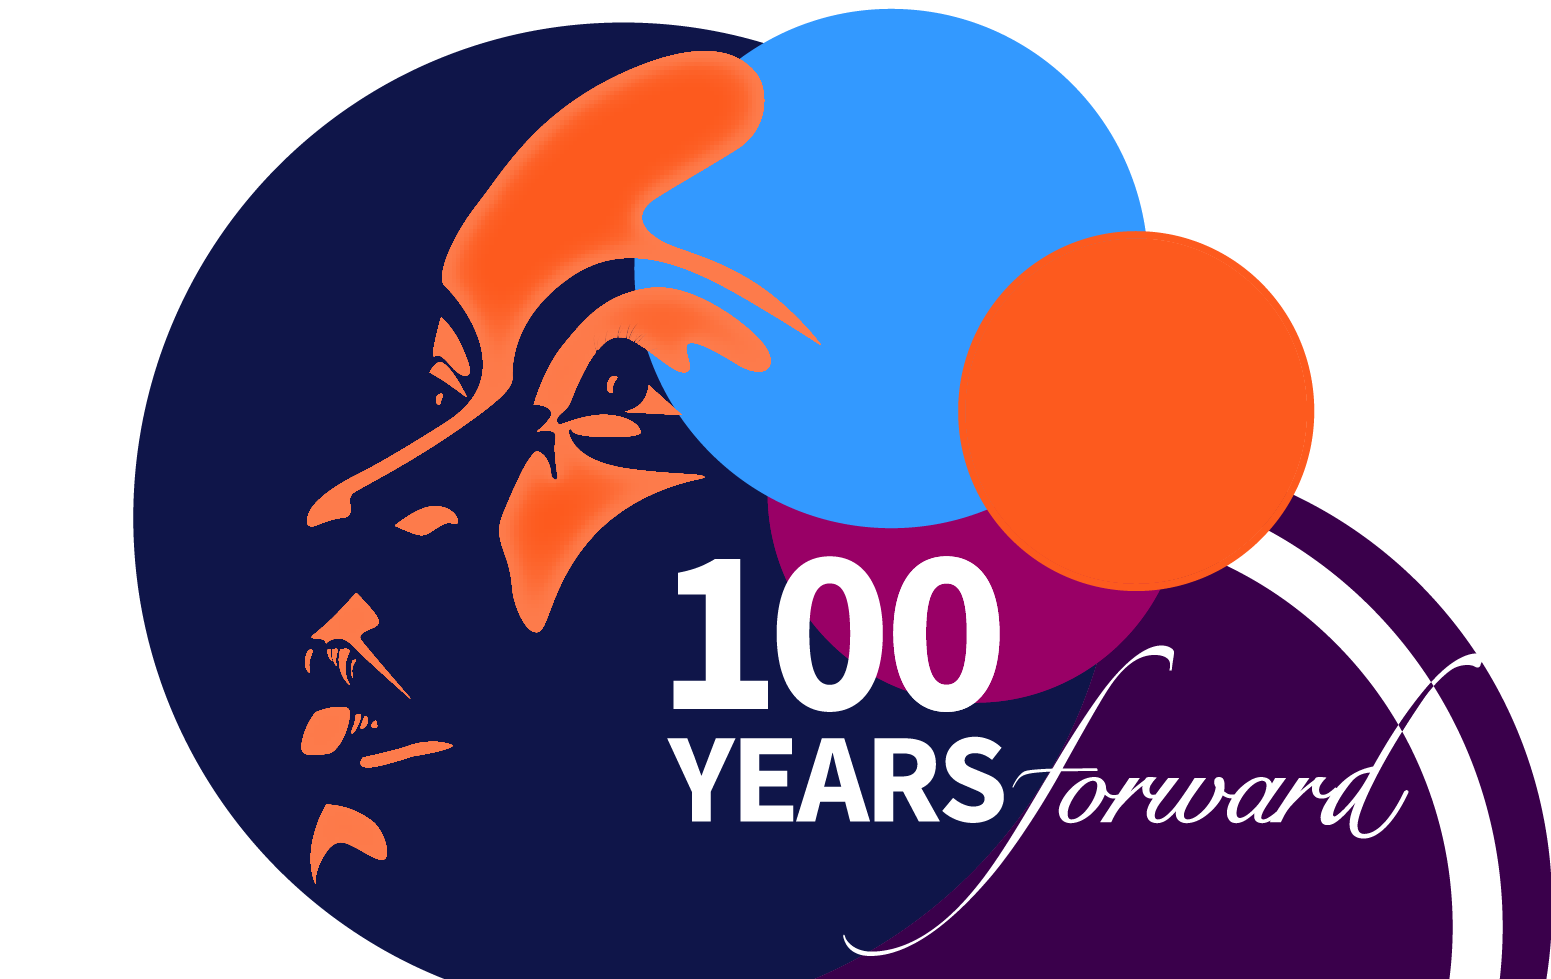 ywca south florida centennial logo